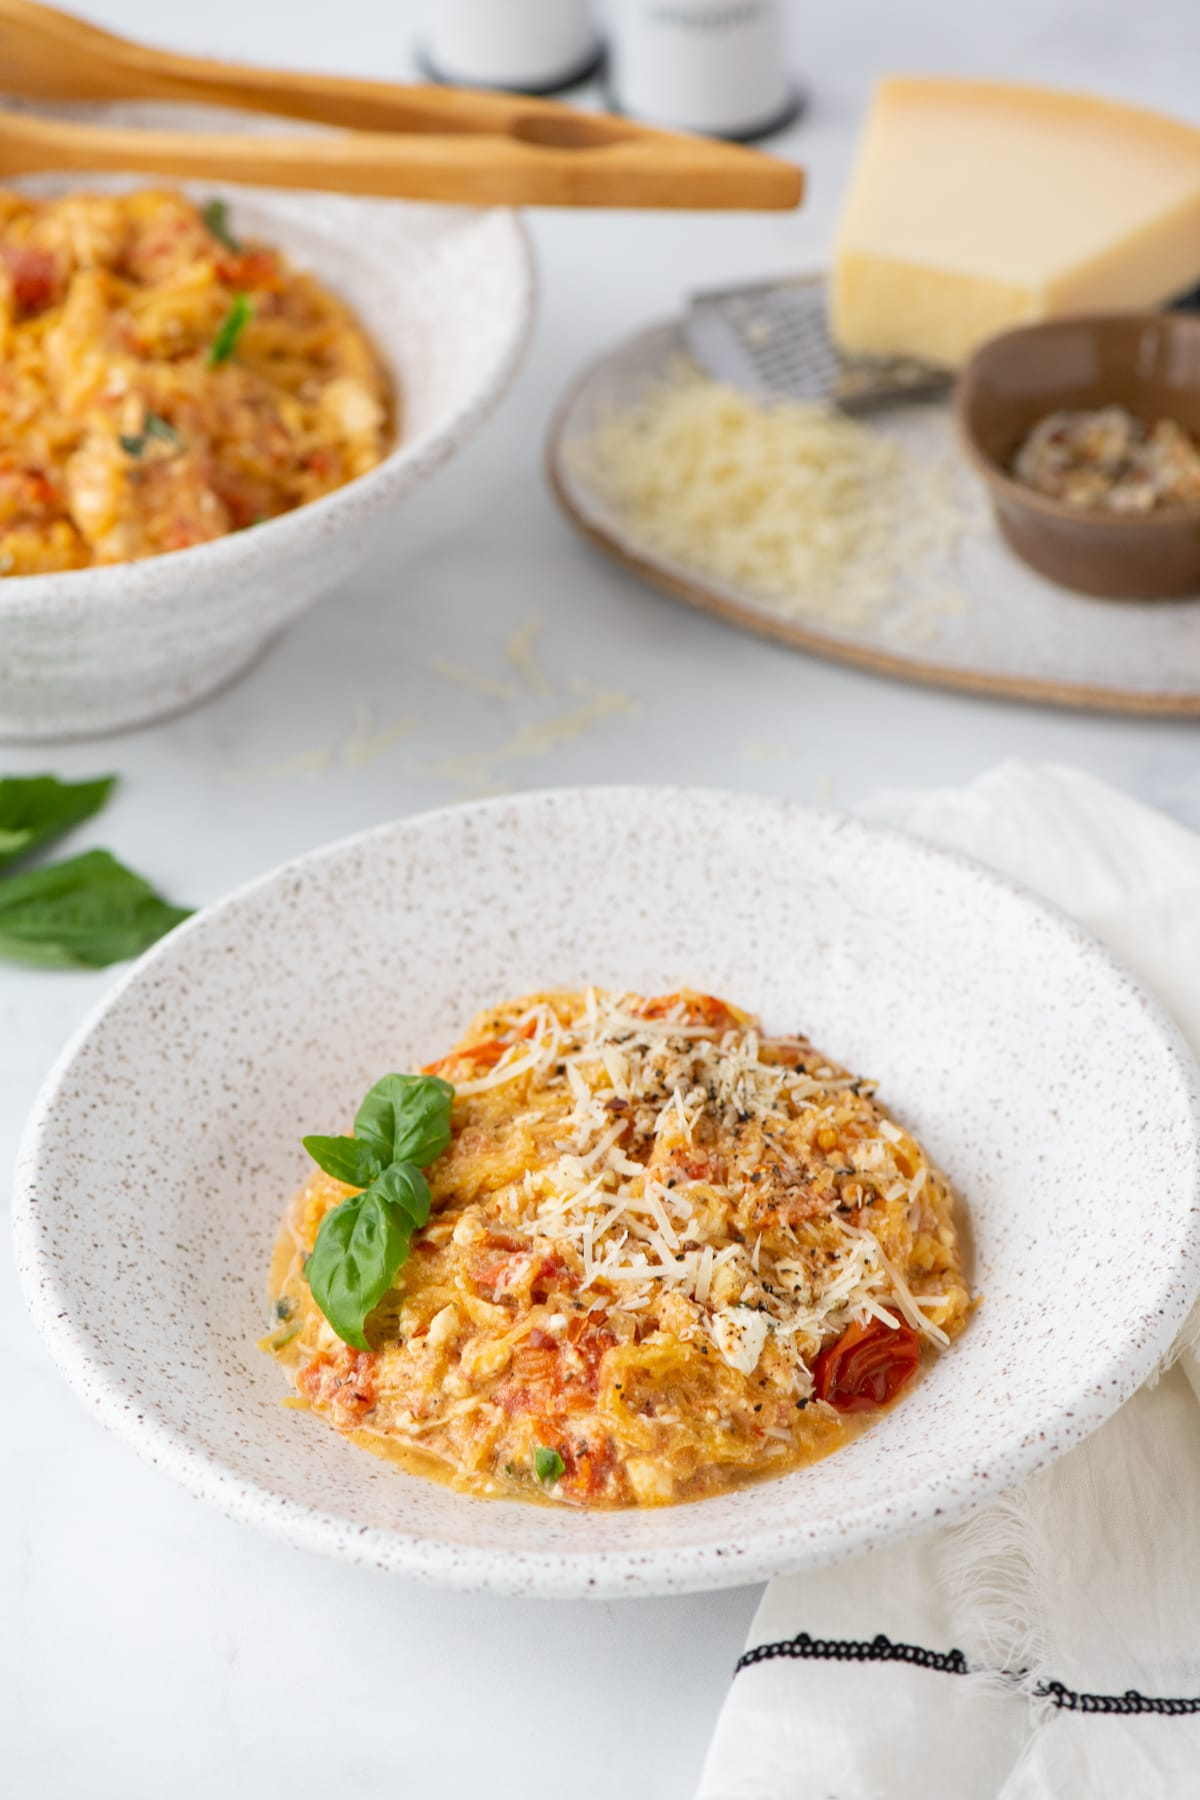 A specked pottery bowl filled with a low carb baked feta pasta with tomatoes, basil and topped with cheese